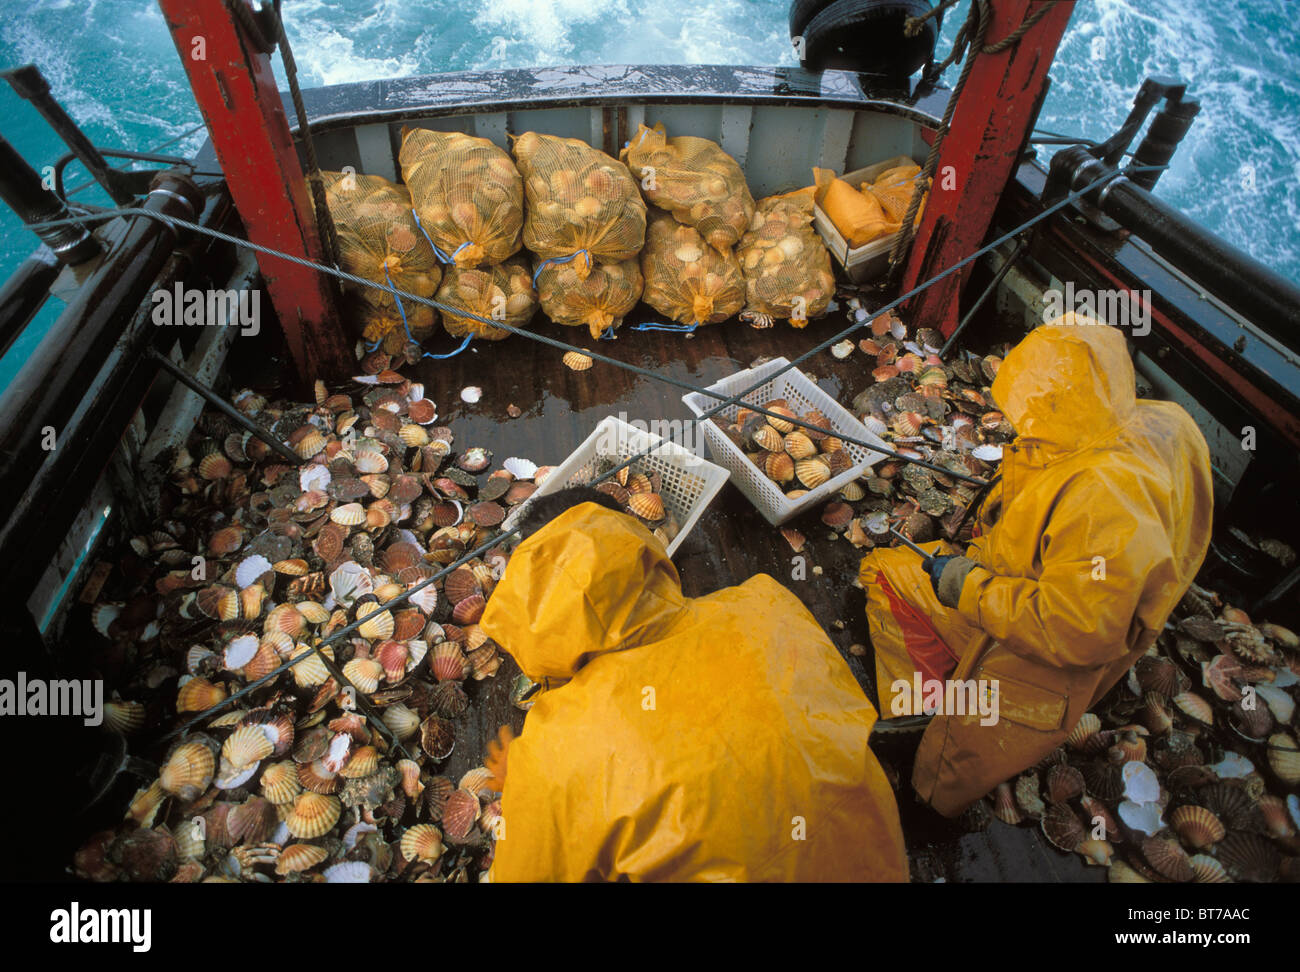 France, Brittany, Cotes d'Armor, St Brieuc bay, Erquy region, Scallop fishing - Stock Image